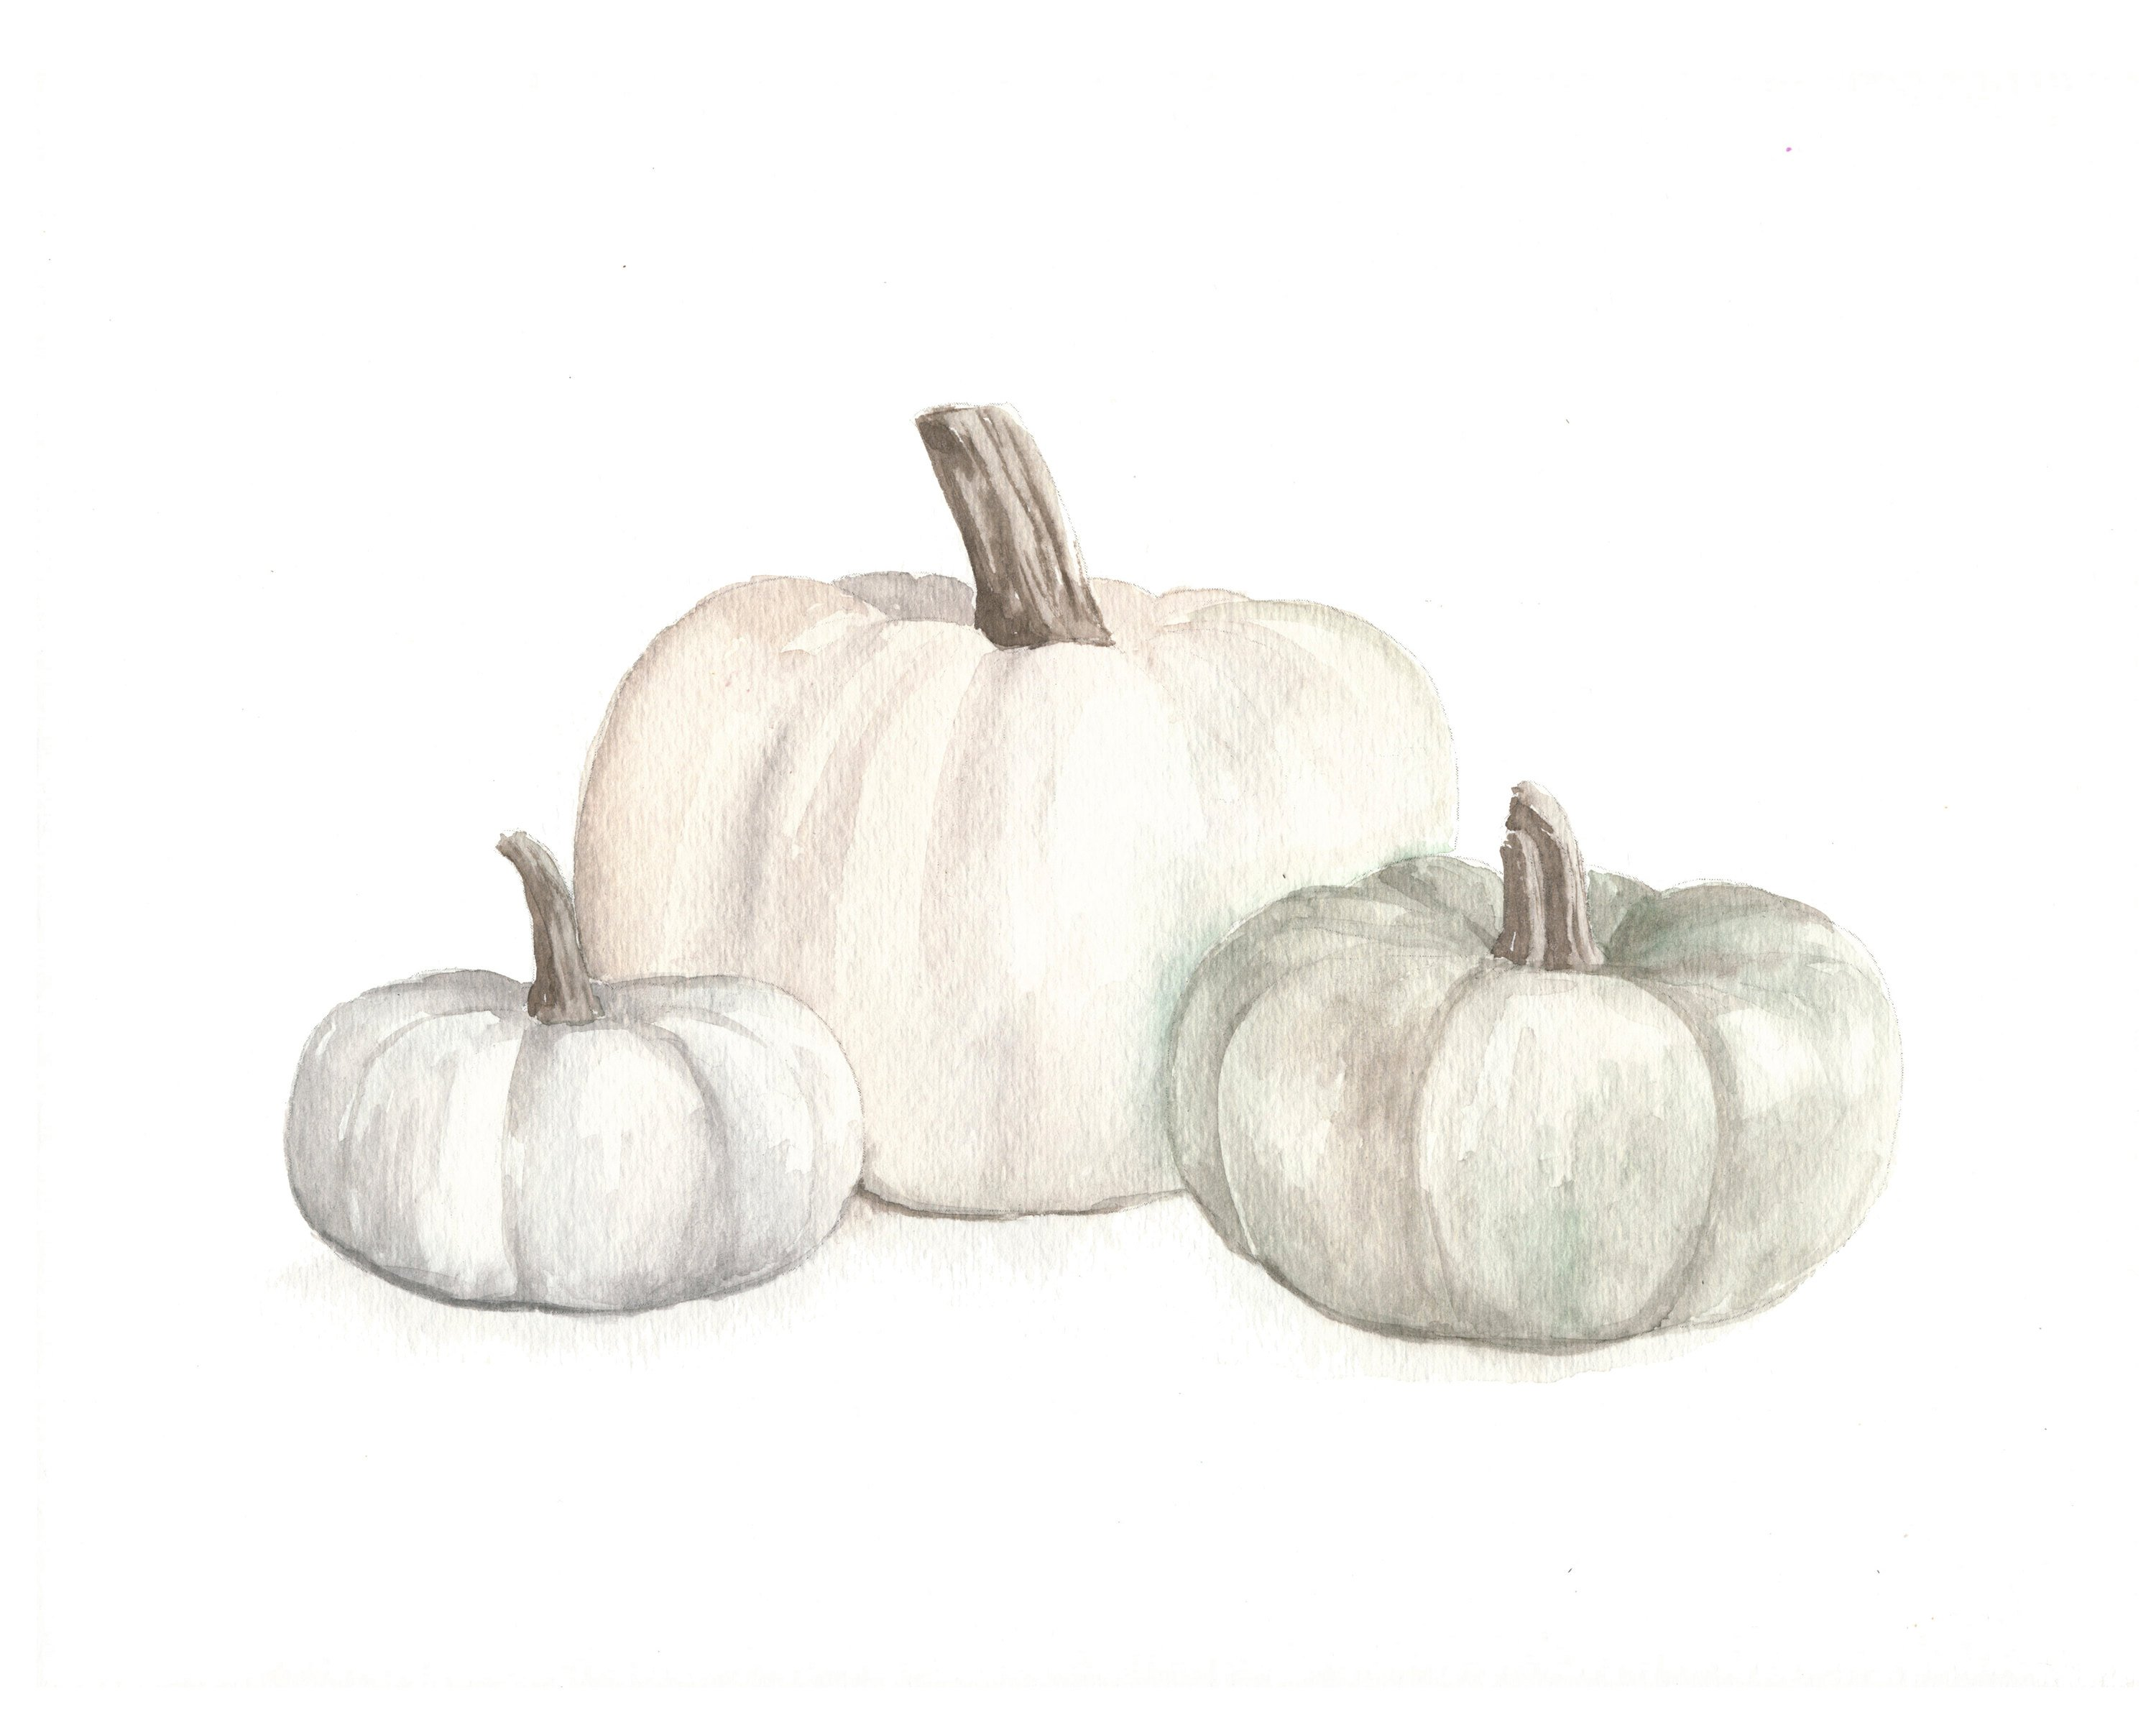 Pumpkin paintings search result at PaintingValley.com.